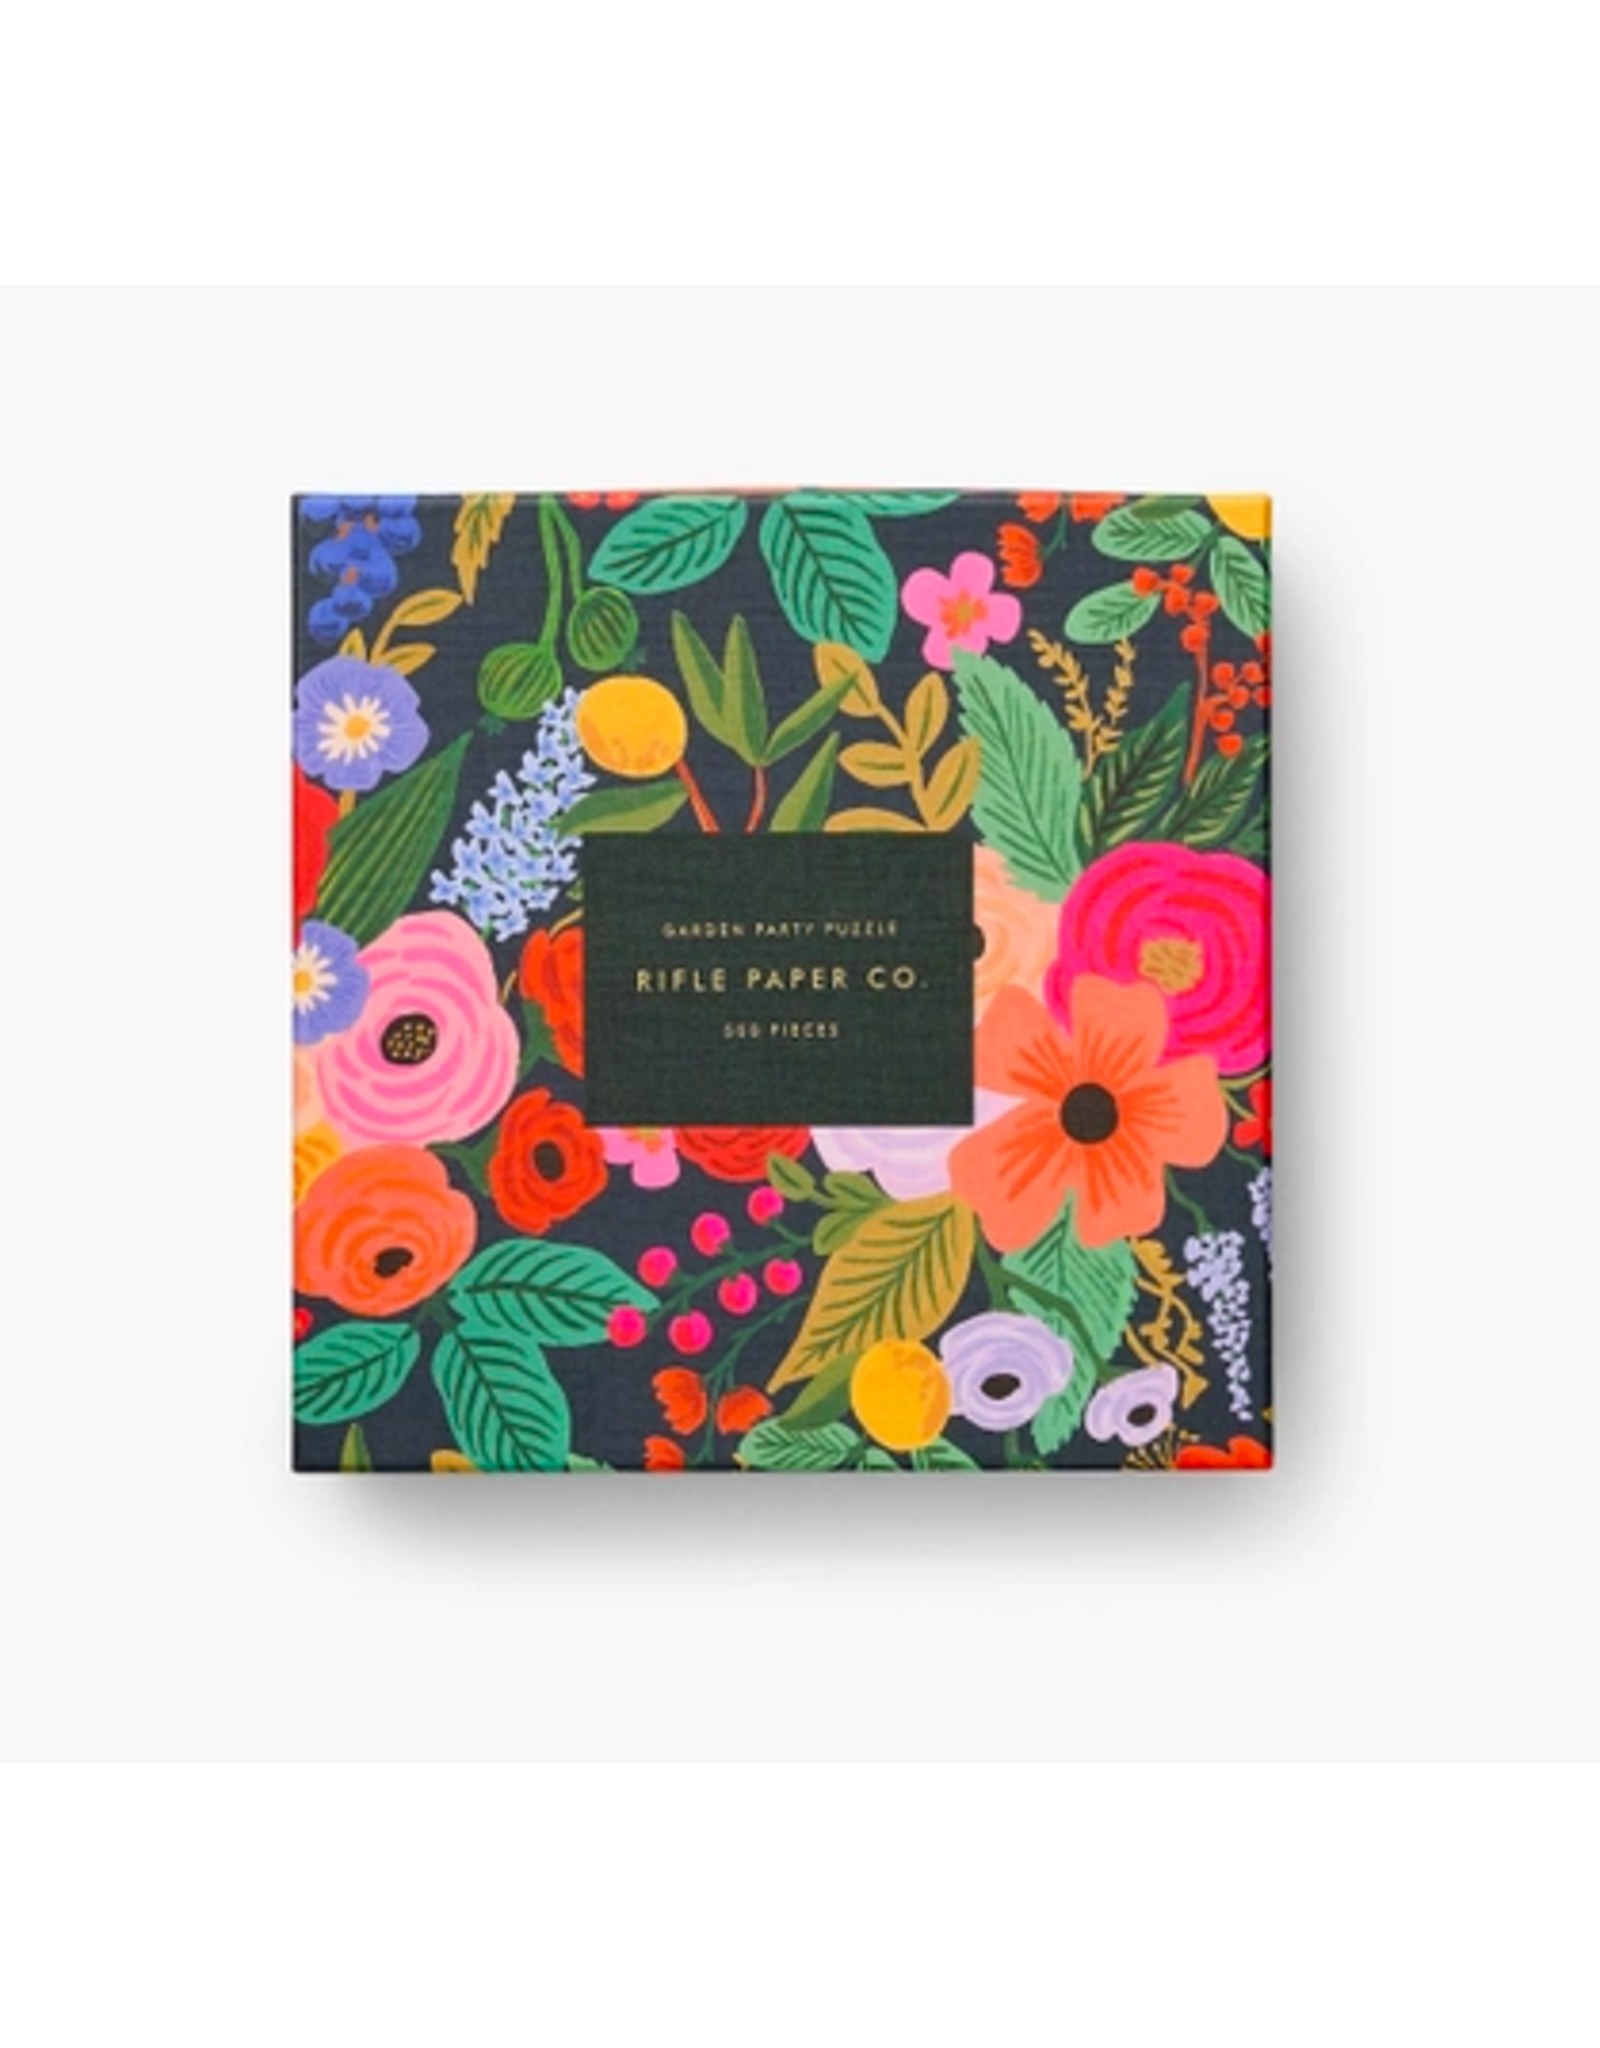 Rifle Paper Co. Garden Party Jigsaw Puzzle